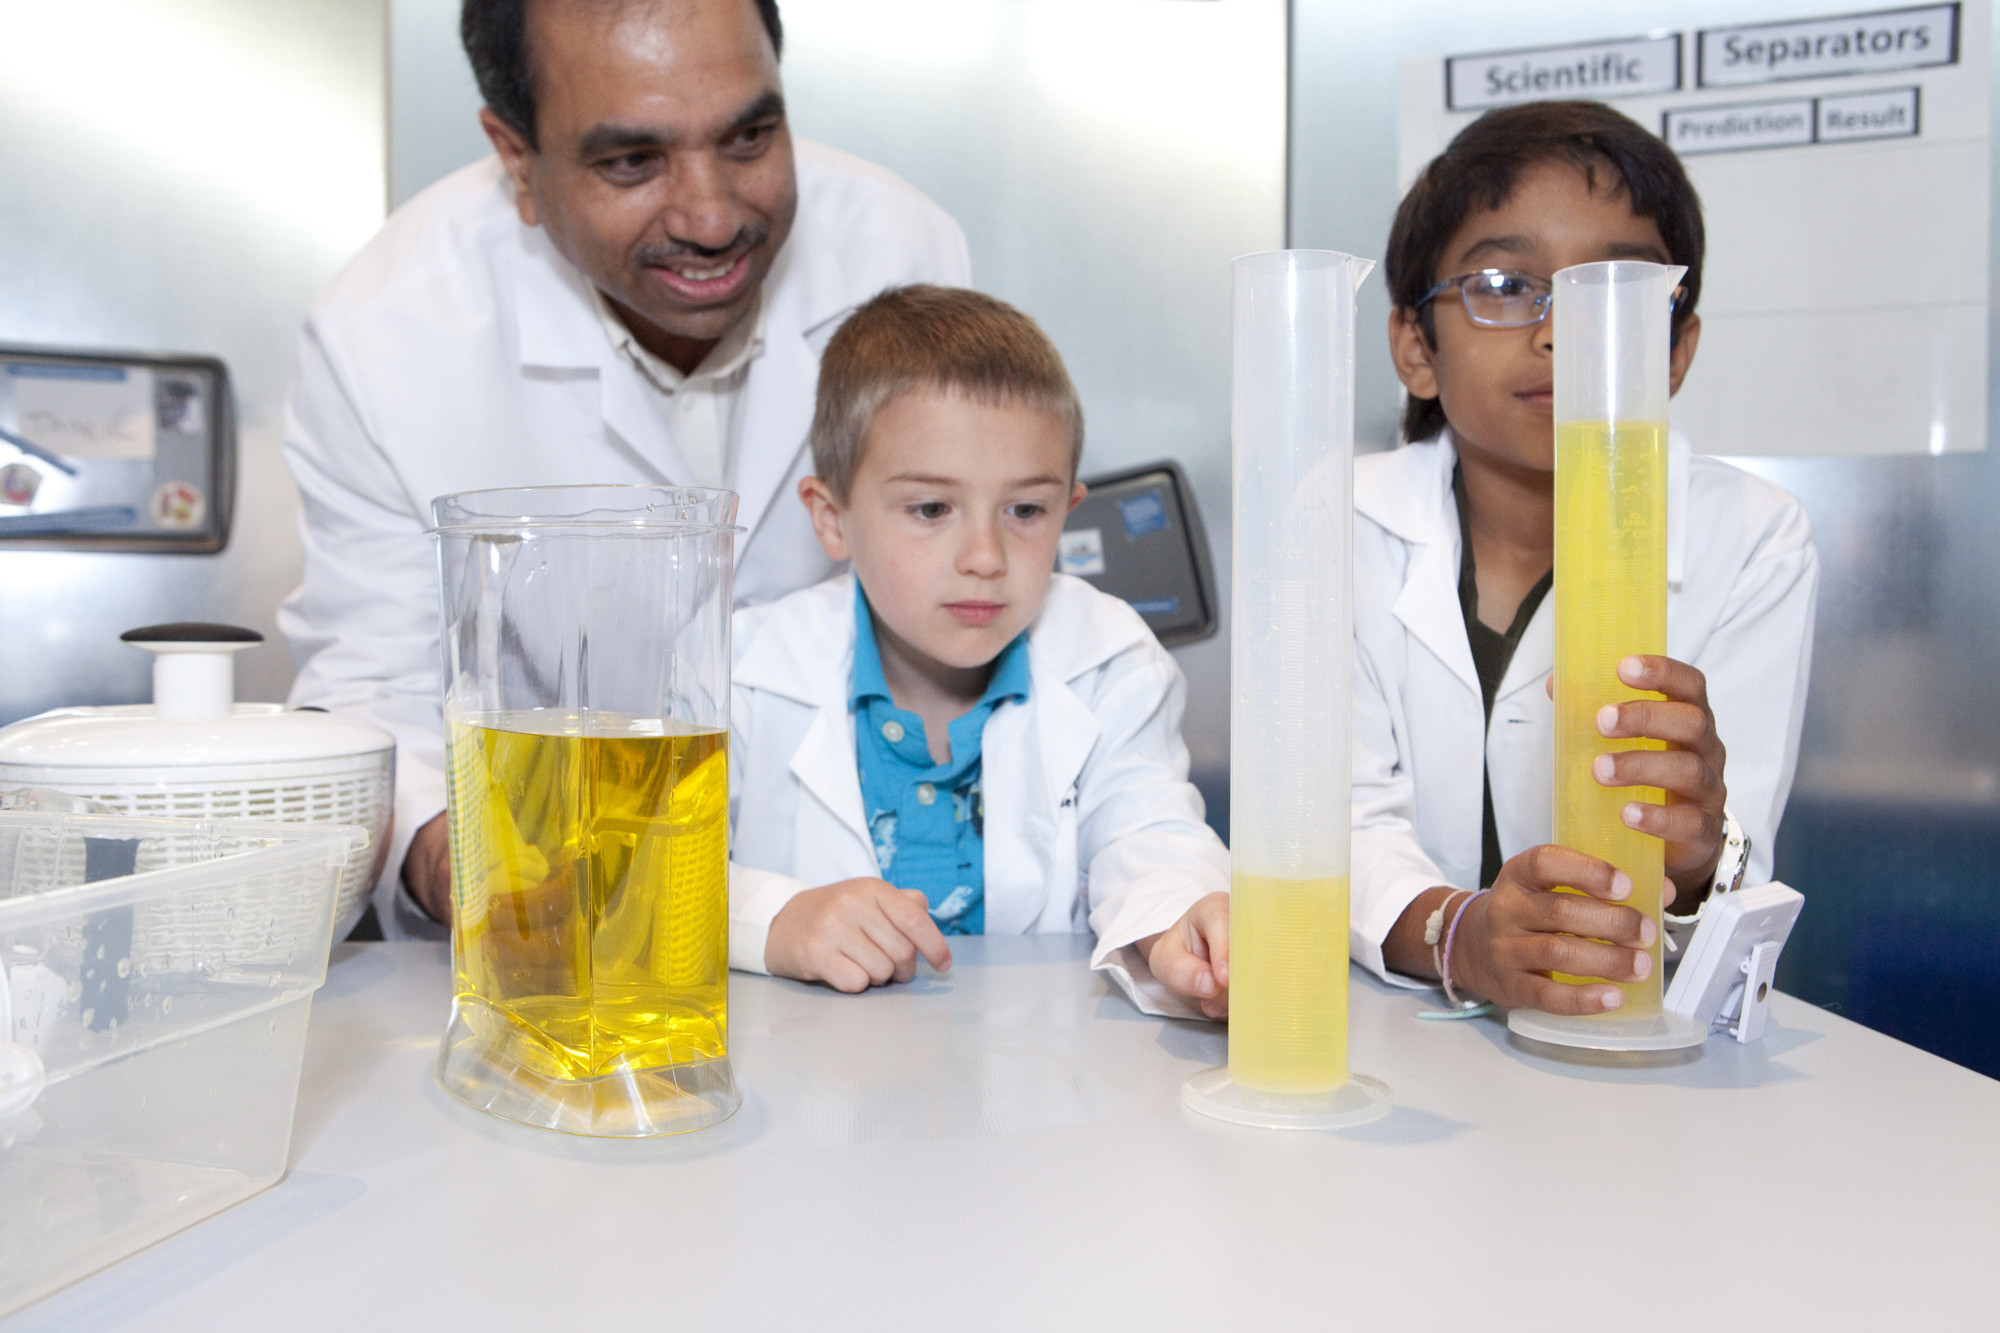 New Science You Exhibit At Bay Area Discovery Museum